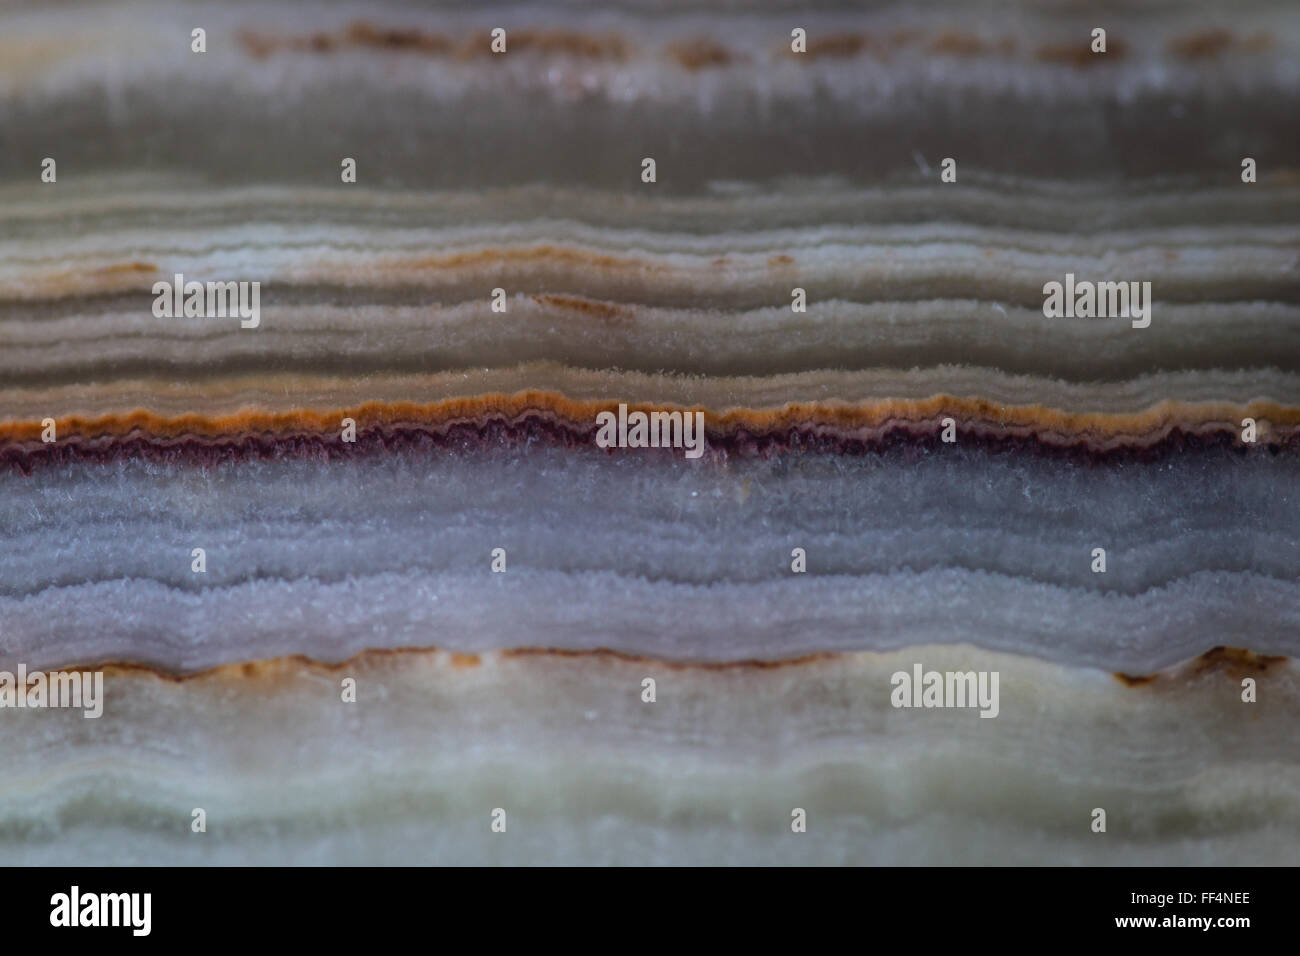 close up of a beautiful polished stone with a beautiful pattern with layers and colors - Stock Image